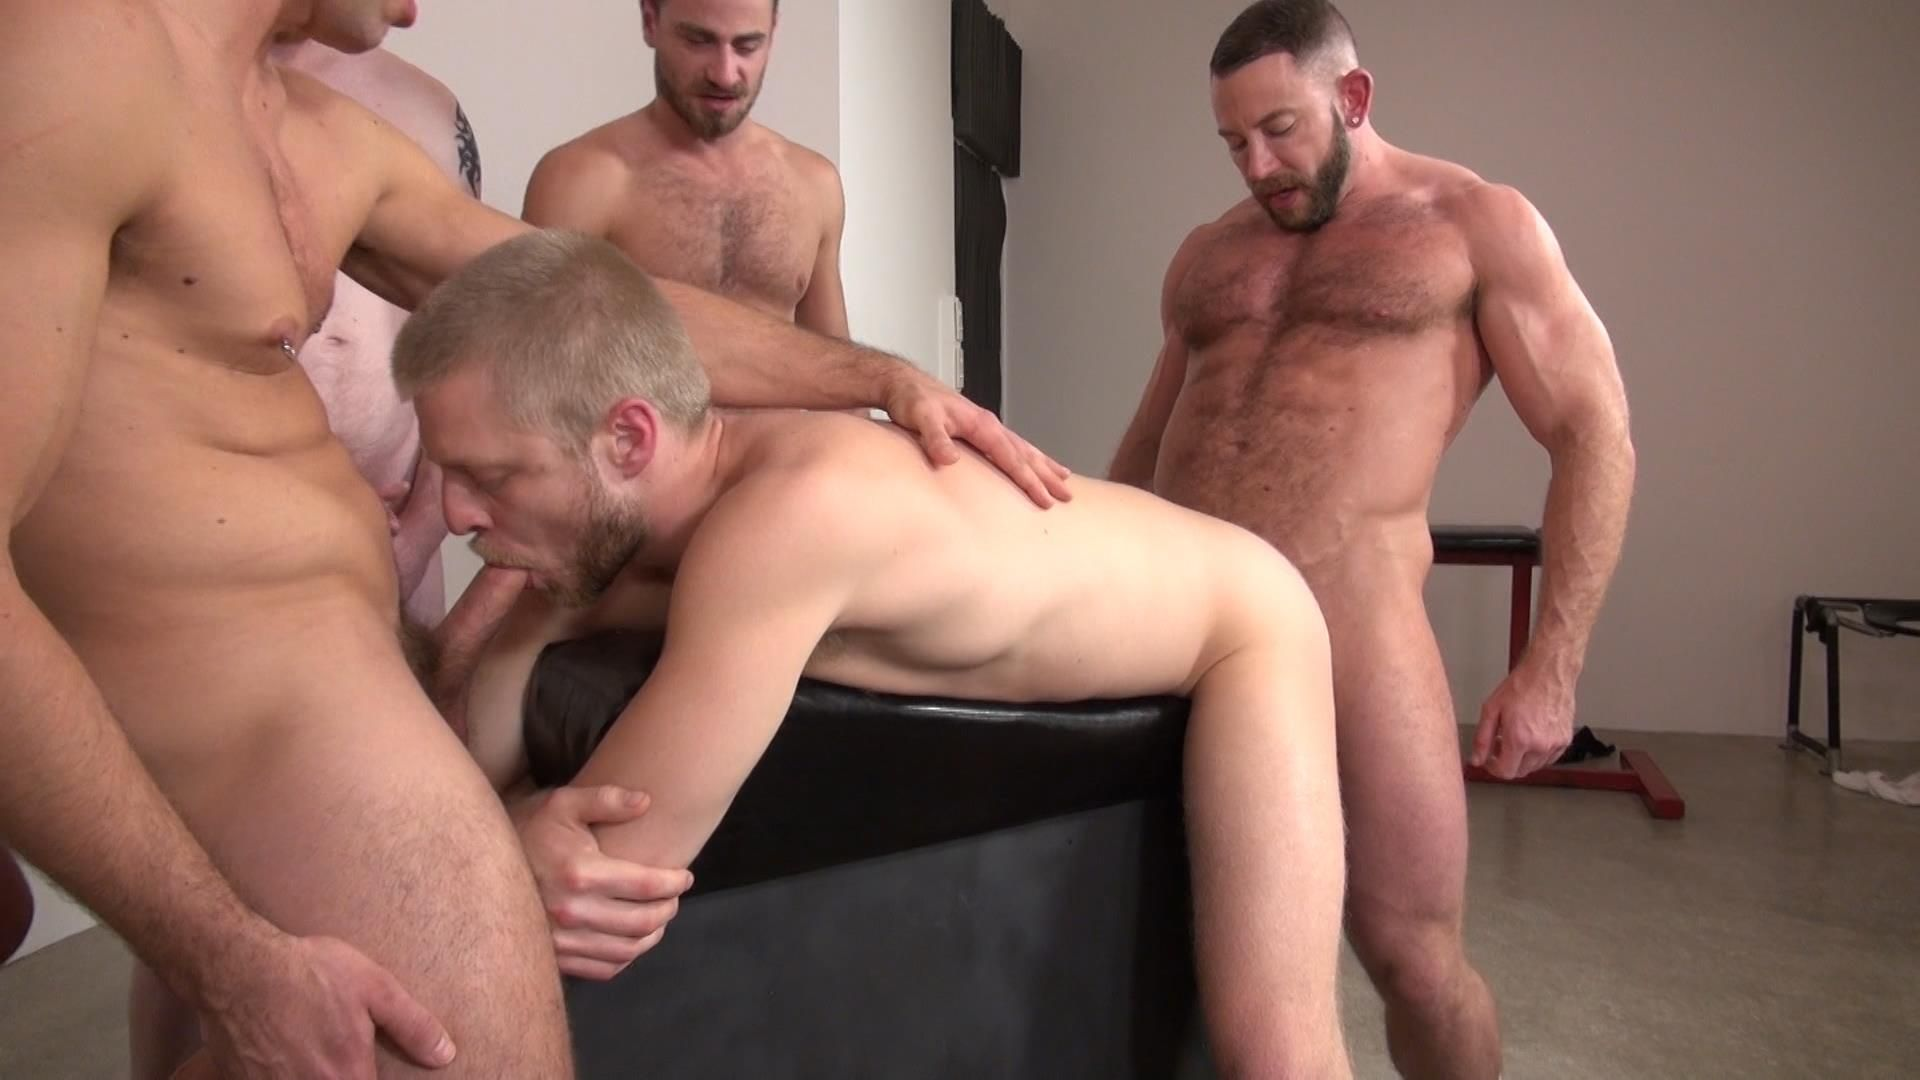 Bear Orgy Porno male orgy sex - nude pics. comments: 1